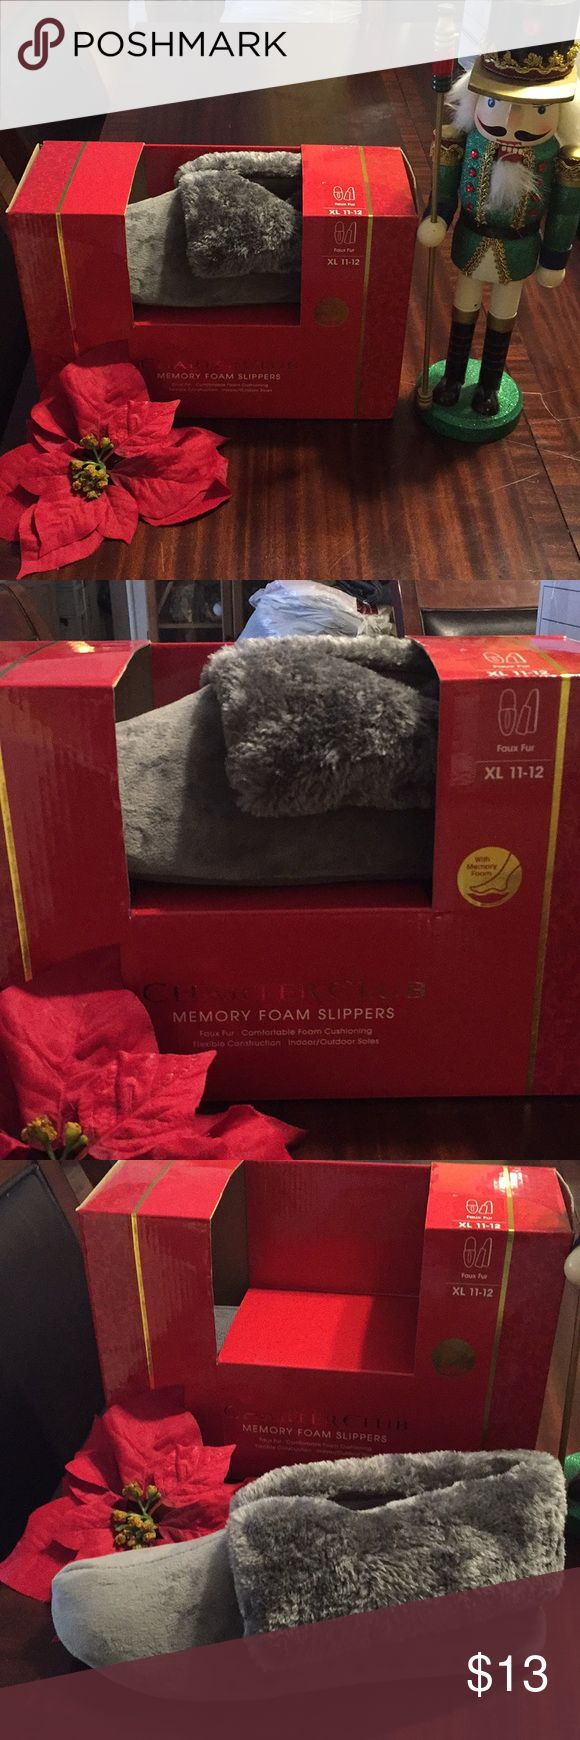 BEAUTIFUL FUZZY MEMORY FOAM SLIPPERS BRAND NEW Great Christmas present for that special someone , Can be used for Ladies or Men Charter Club Shoes Slippers